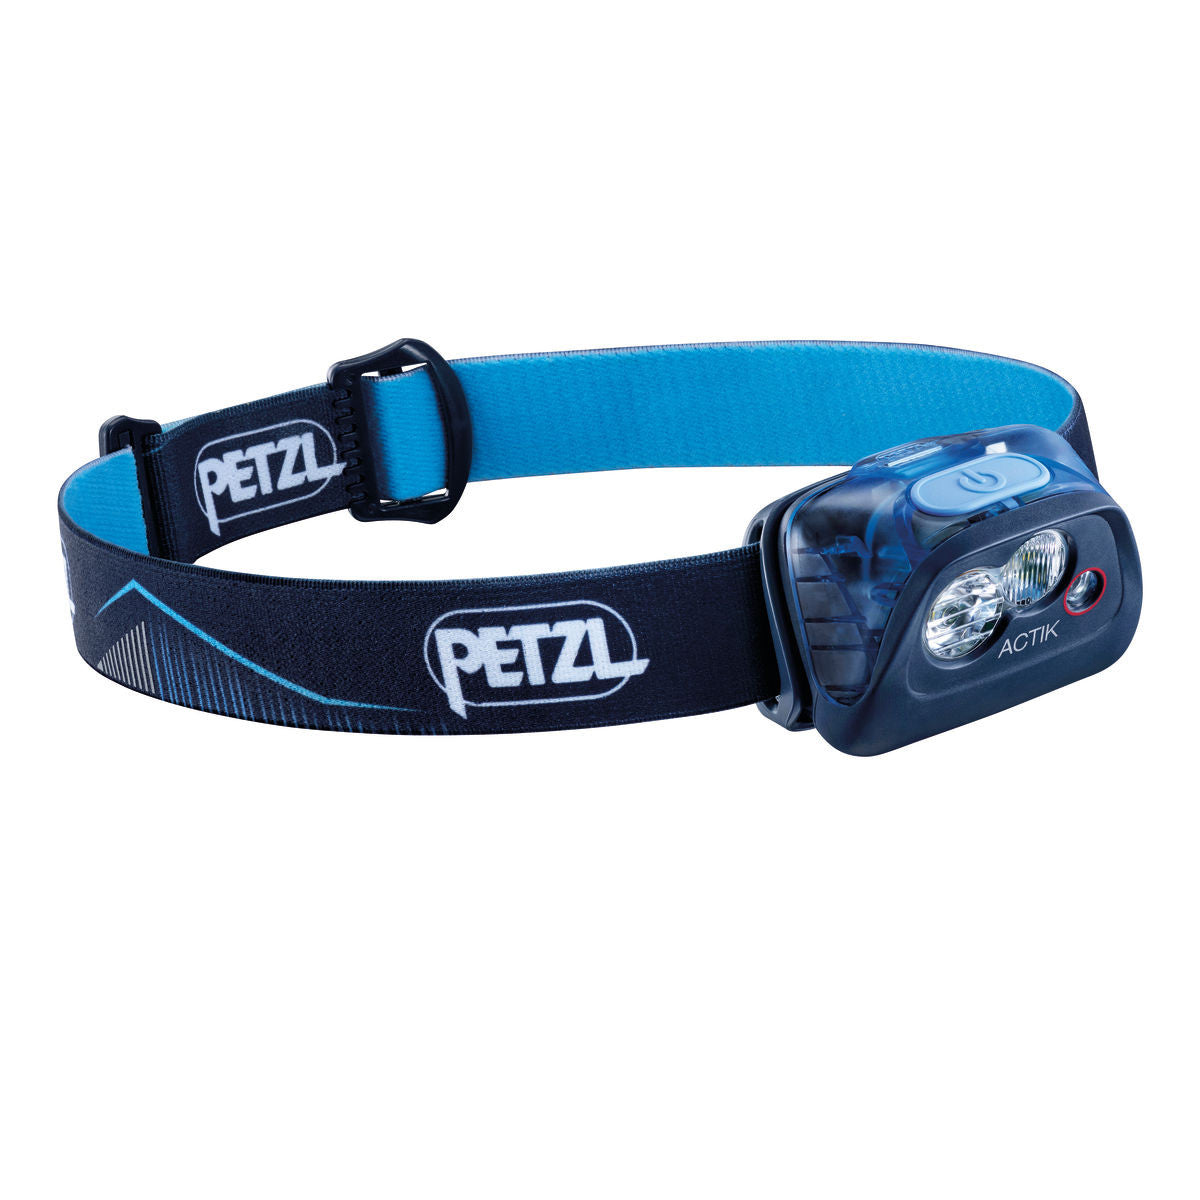 Petzl Actik Headtorch, front/side view in Blue colour